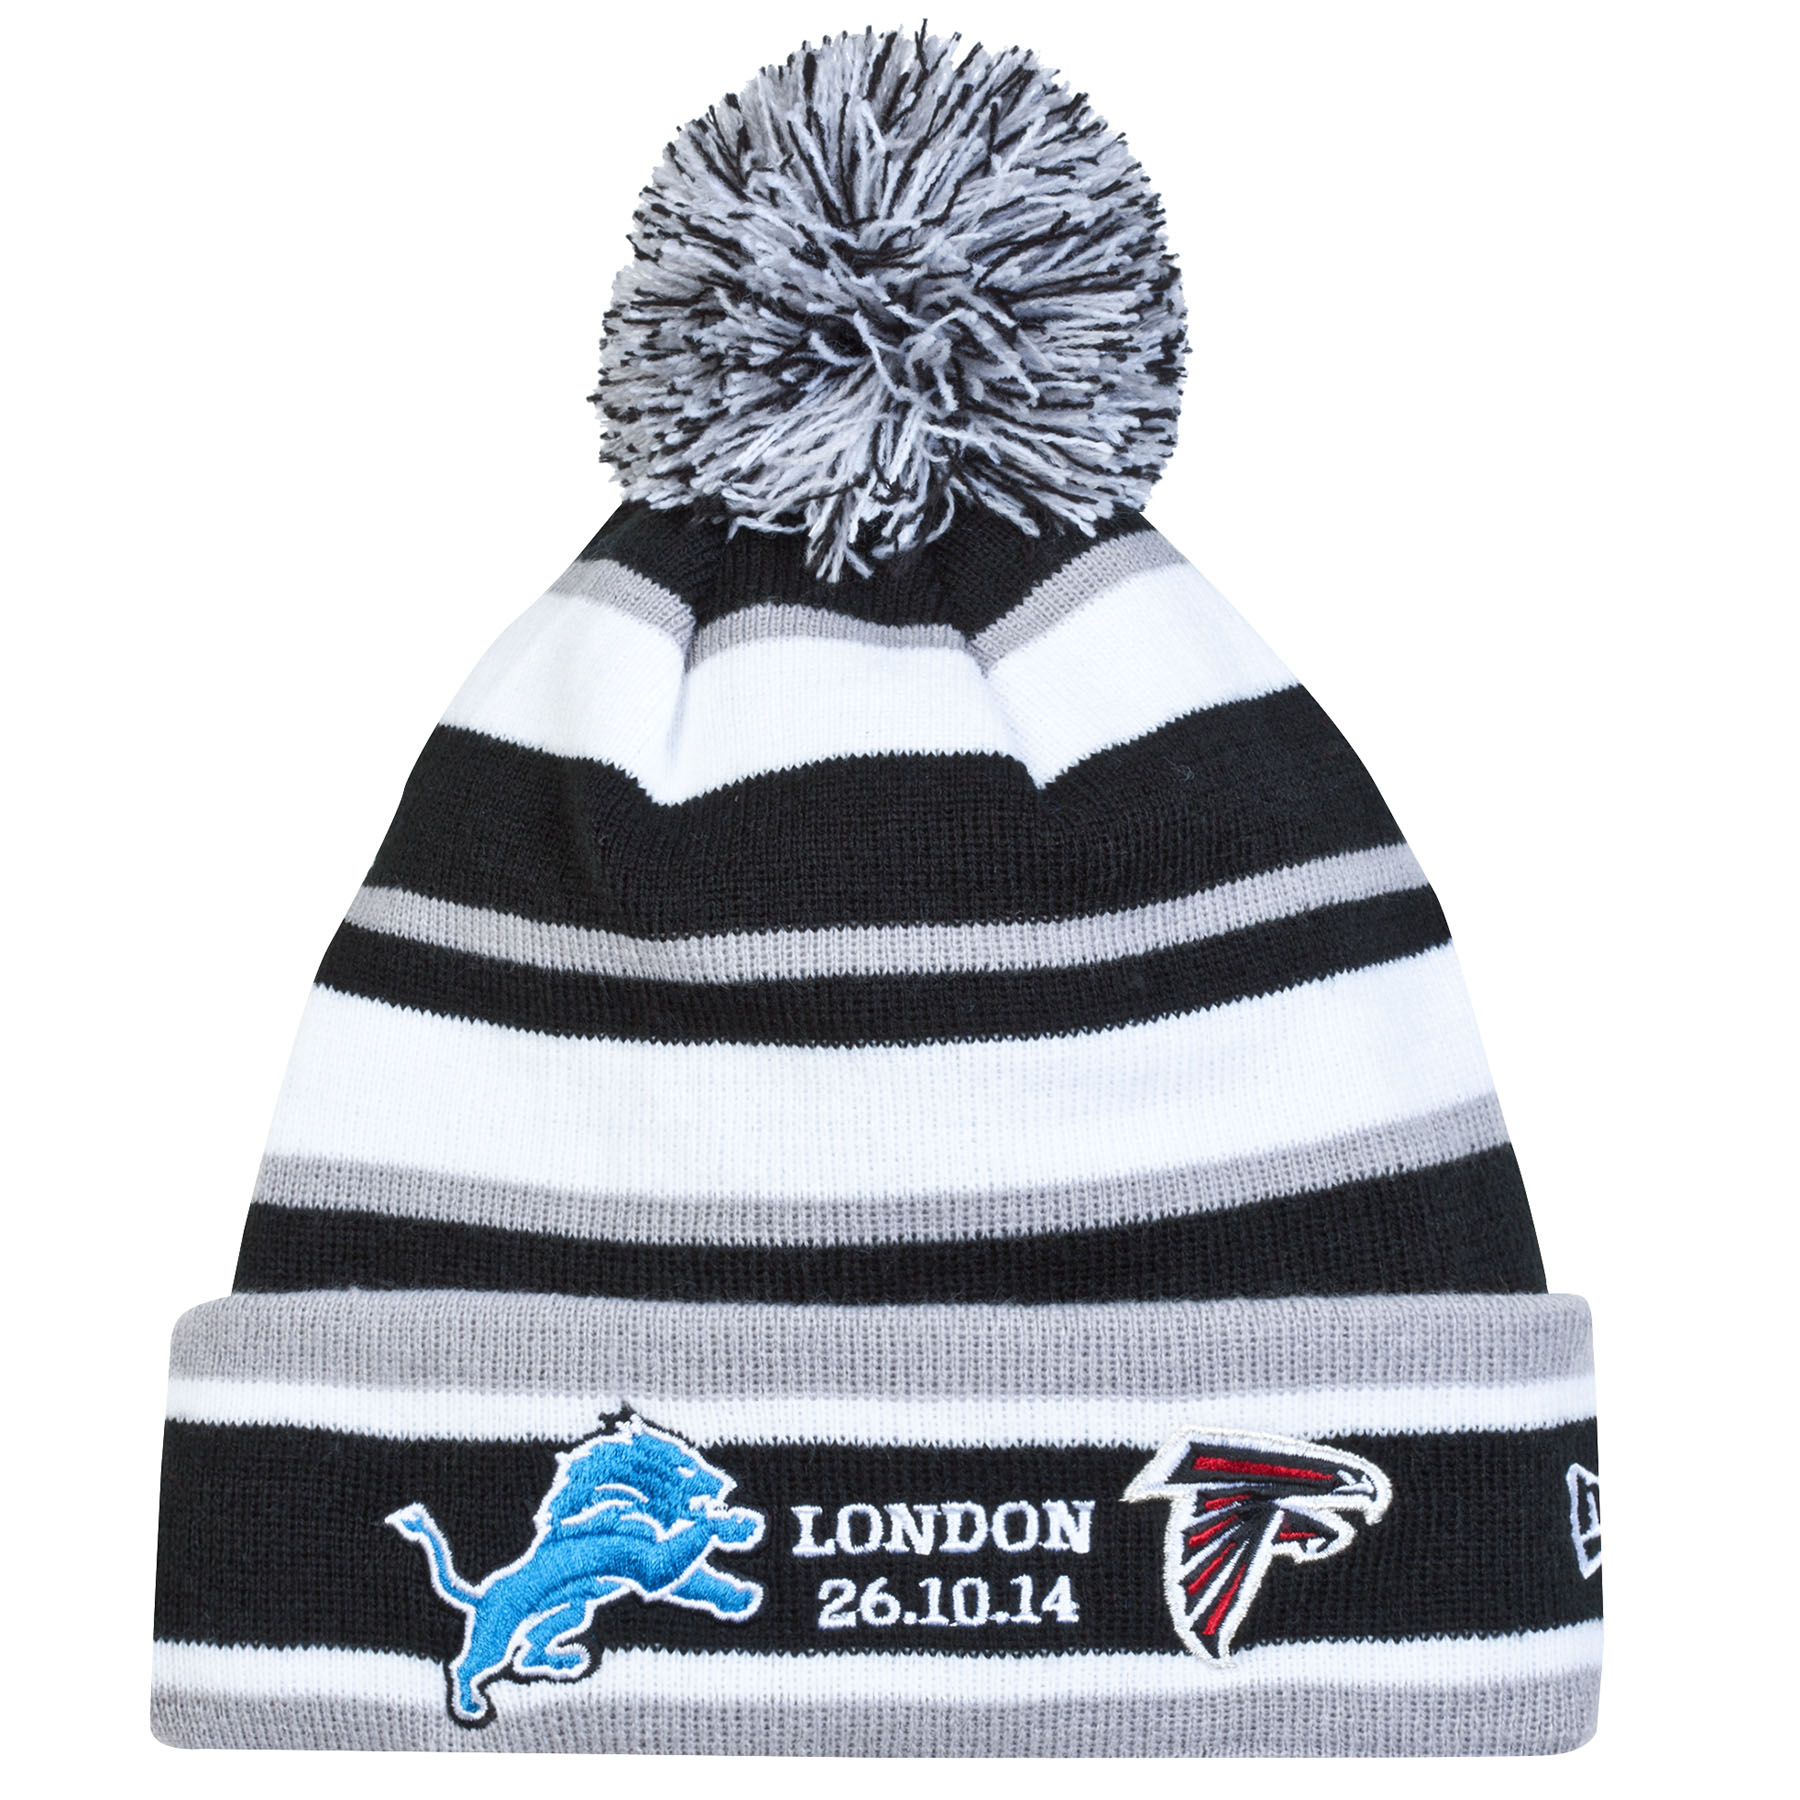 NFL International Series 2014 New Era Sport Knit Fleece Hat - Lions - Falcons